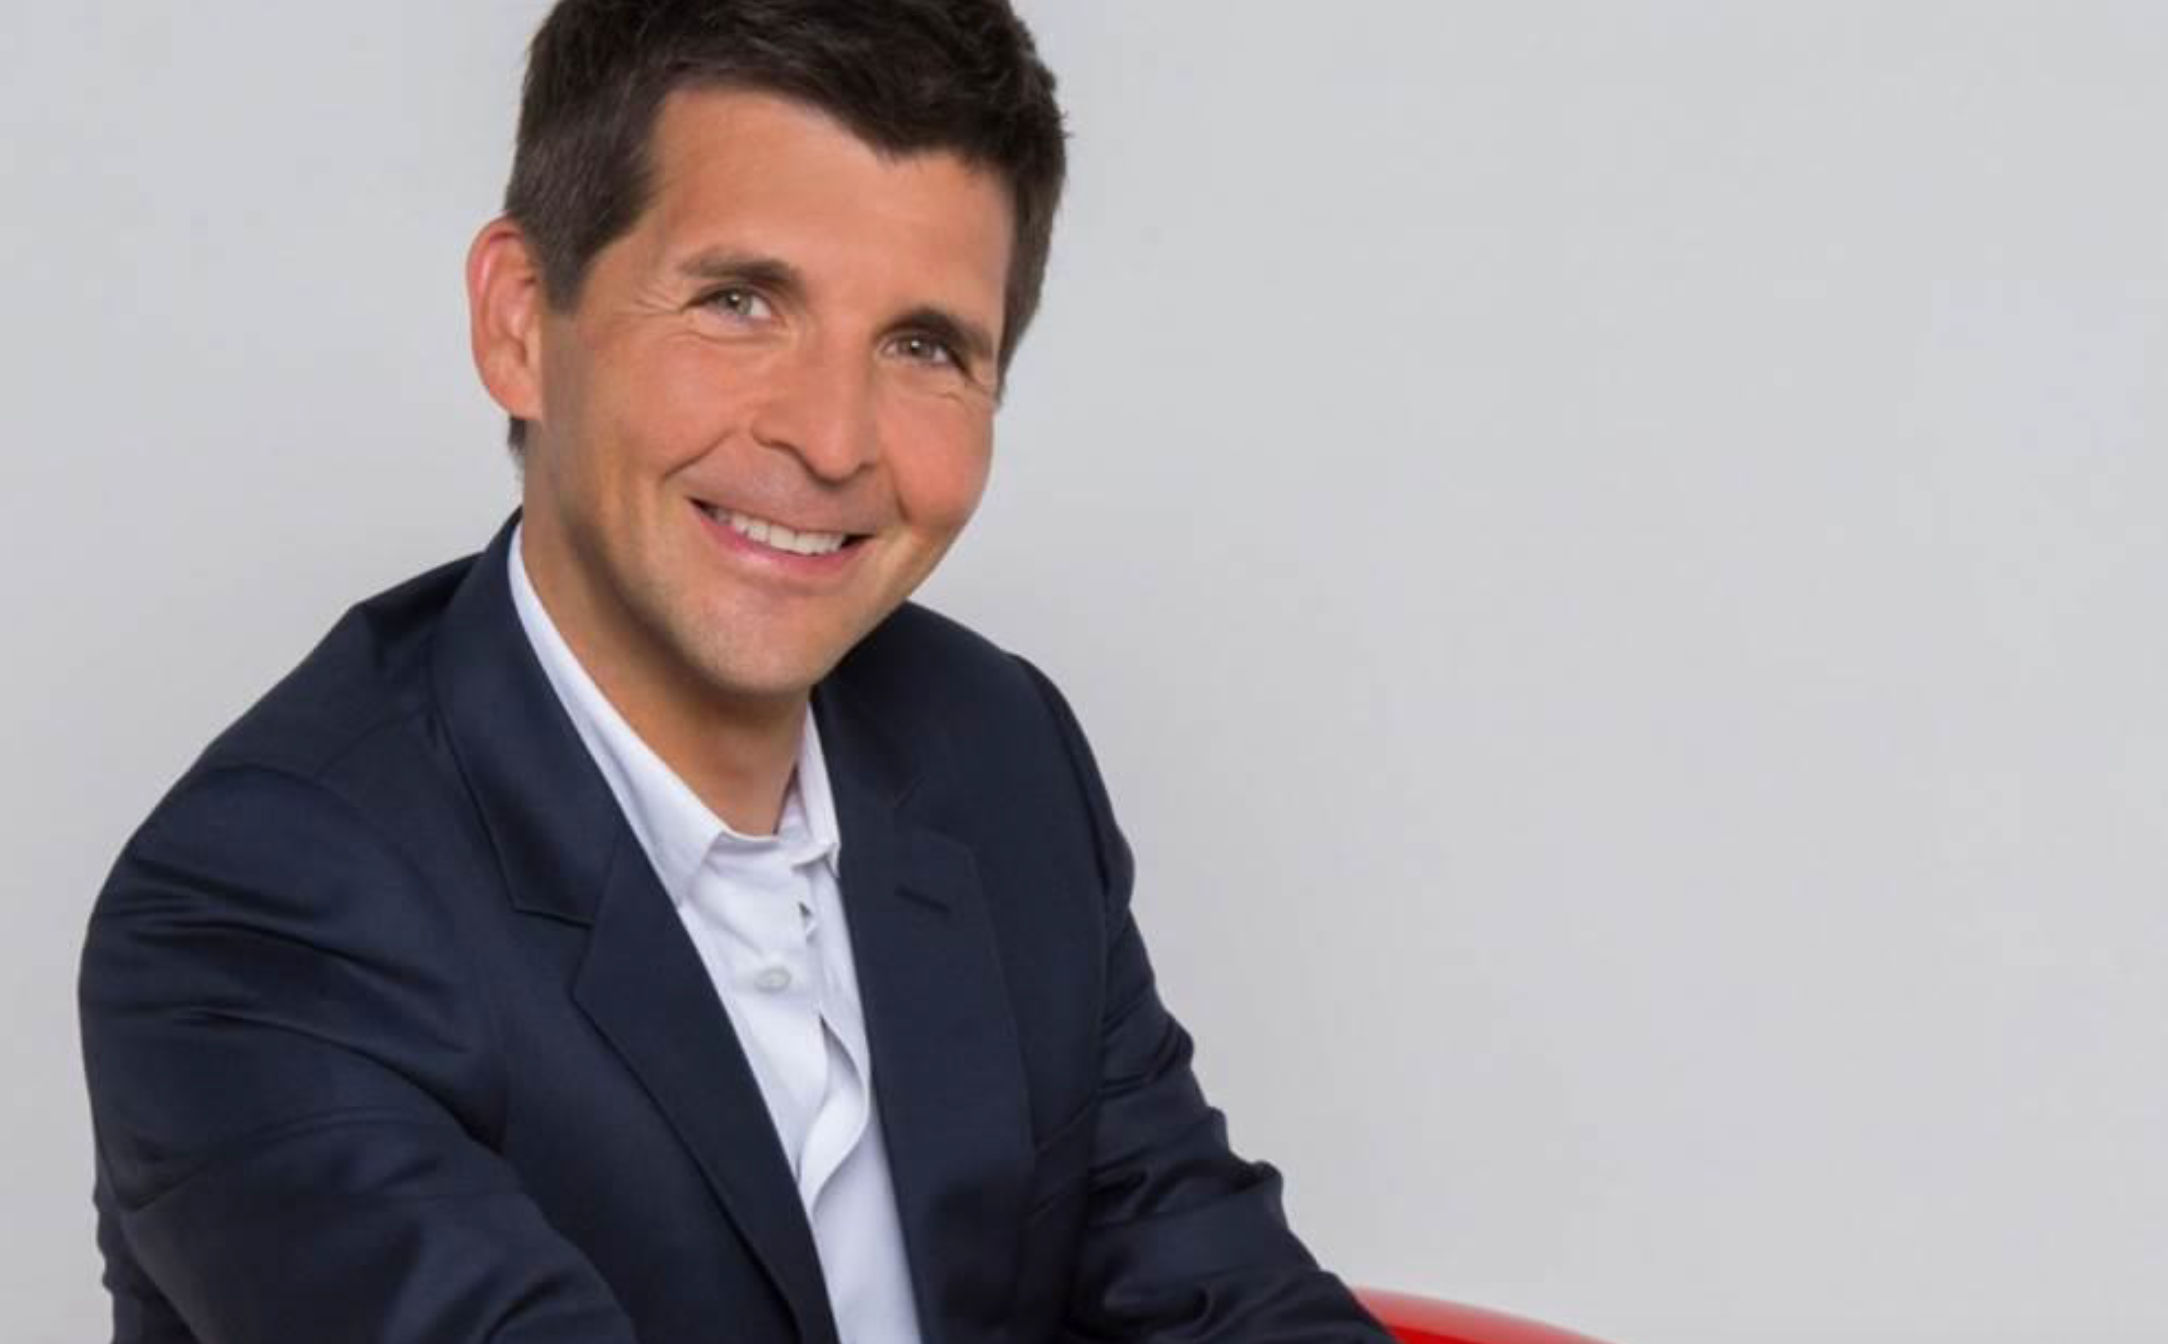 Officiel : Thomas Sotto rejoint RTL